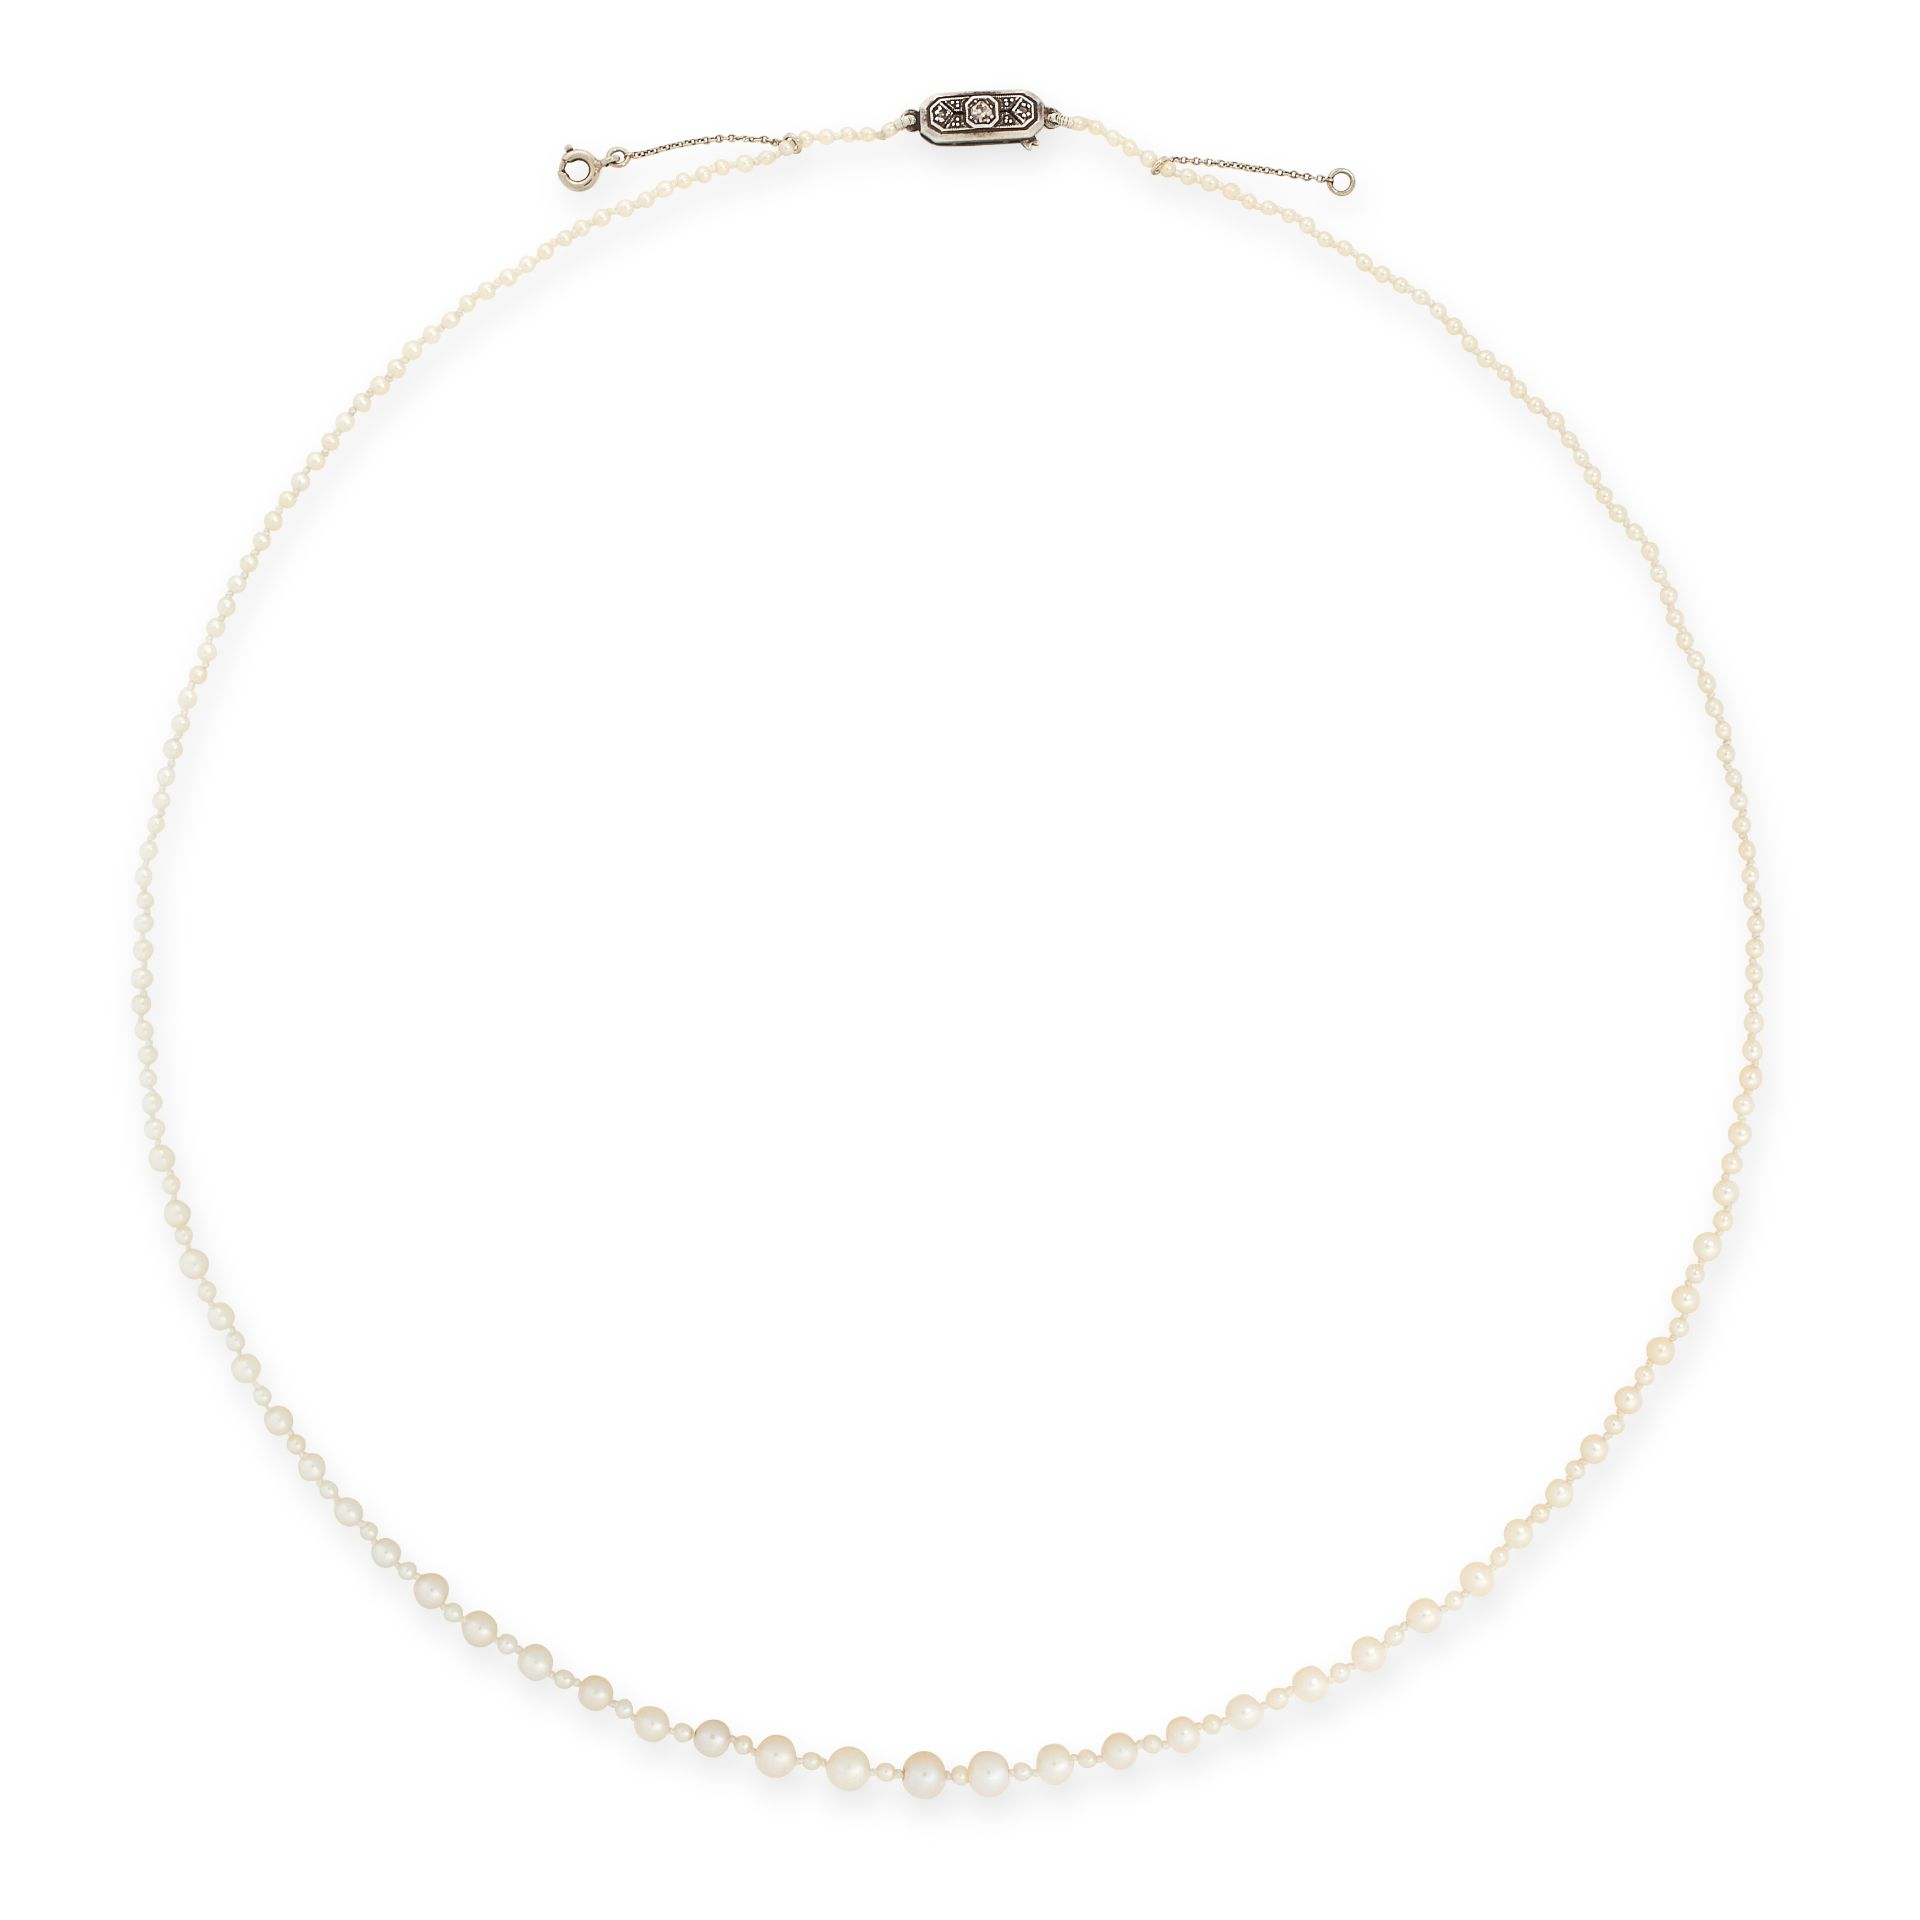 AN ANTIQUE NATURAL PEARL AND DIAMOND NECKLACE comprising a single row of one hundred and eighty